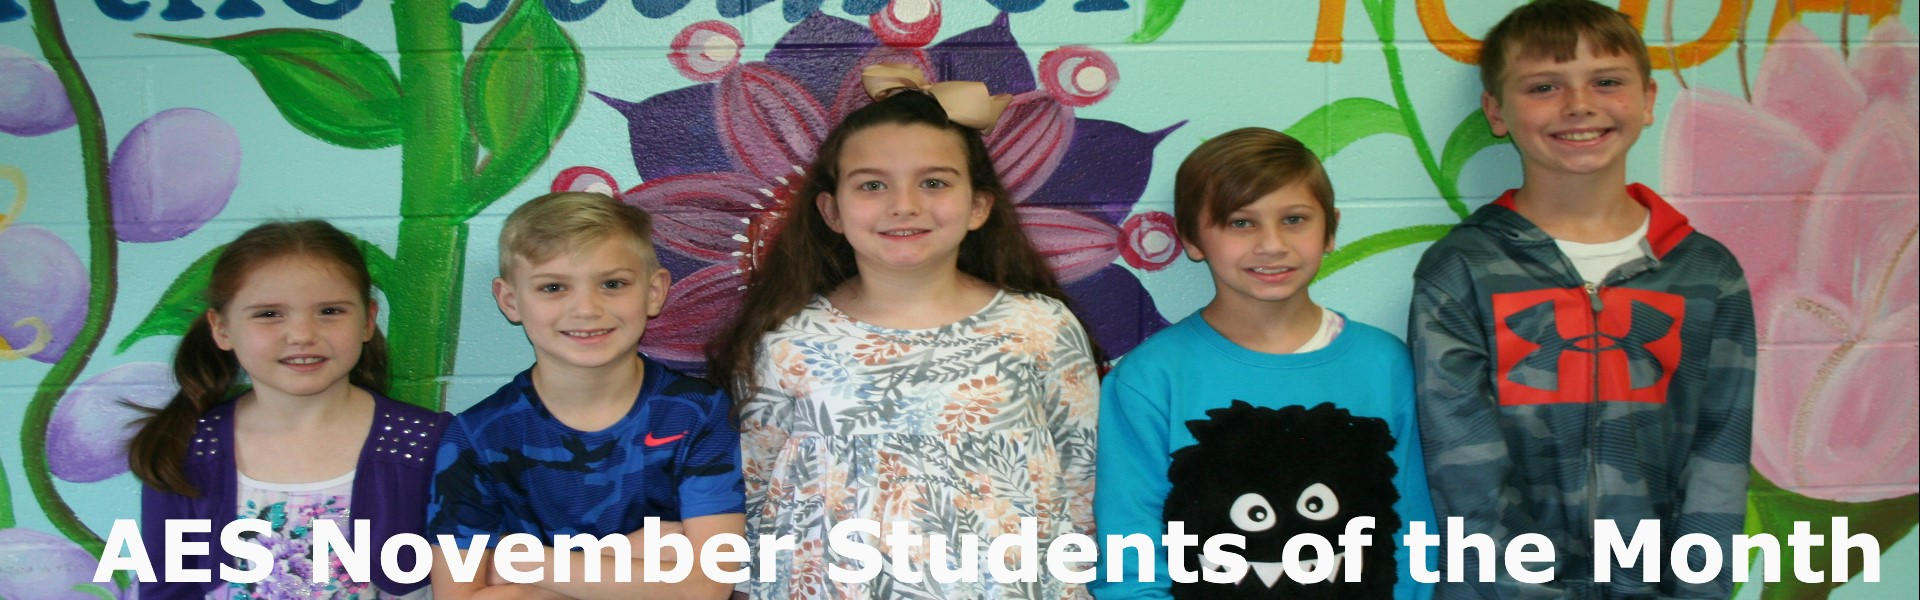 Nov. Students of the Month